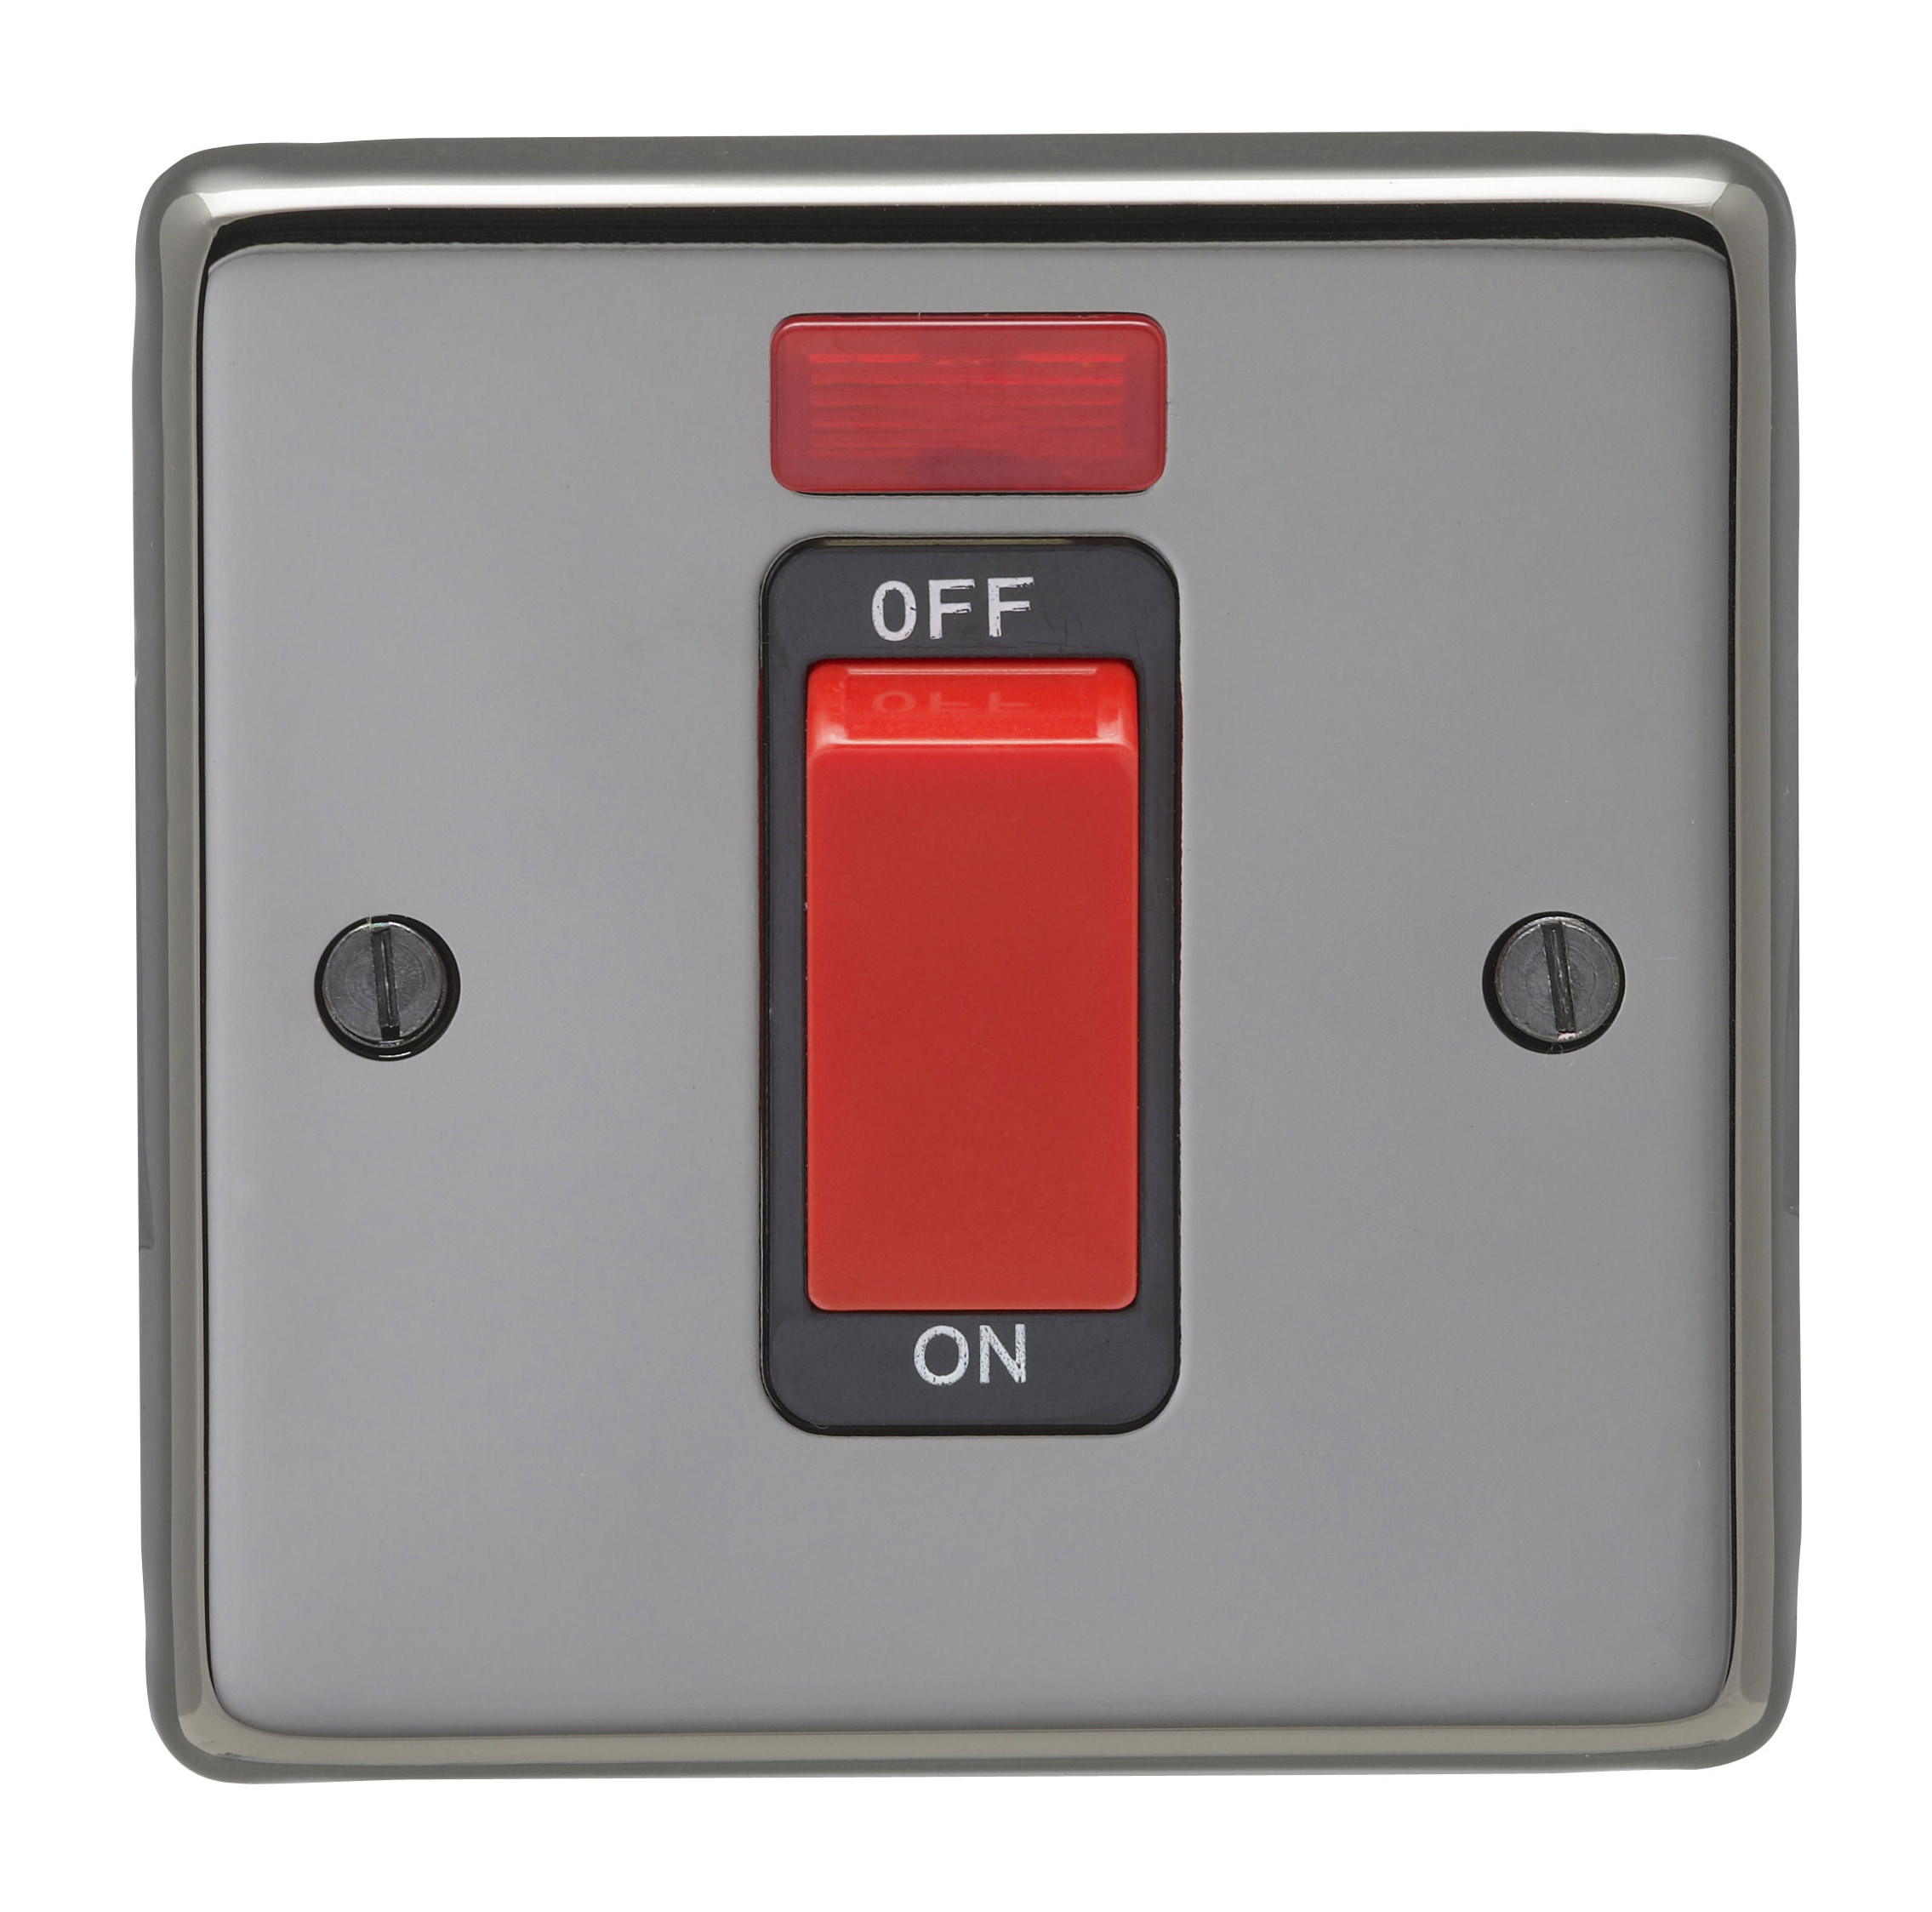 View BN Single Plate Cooker Switch offered by HiF Kitchens